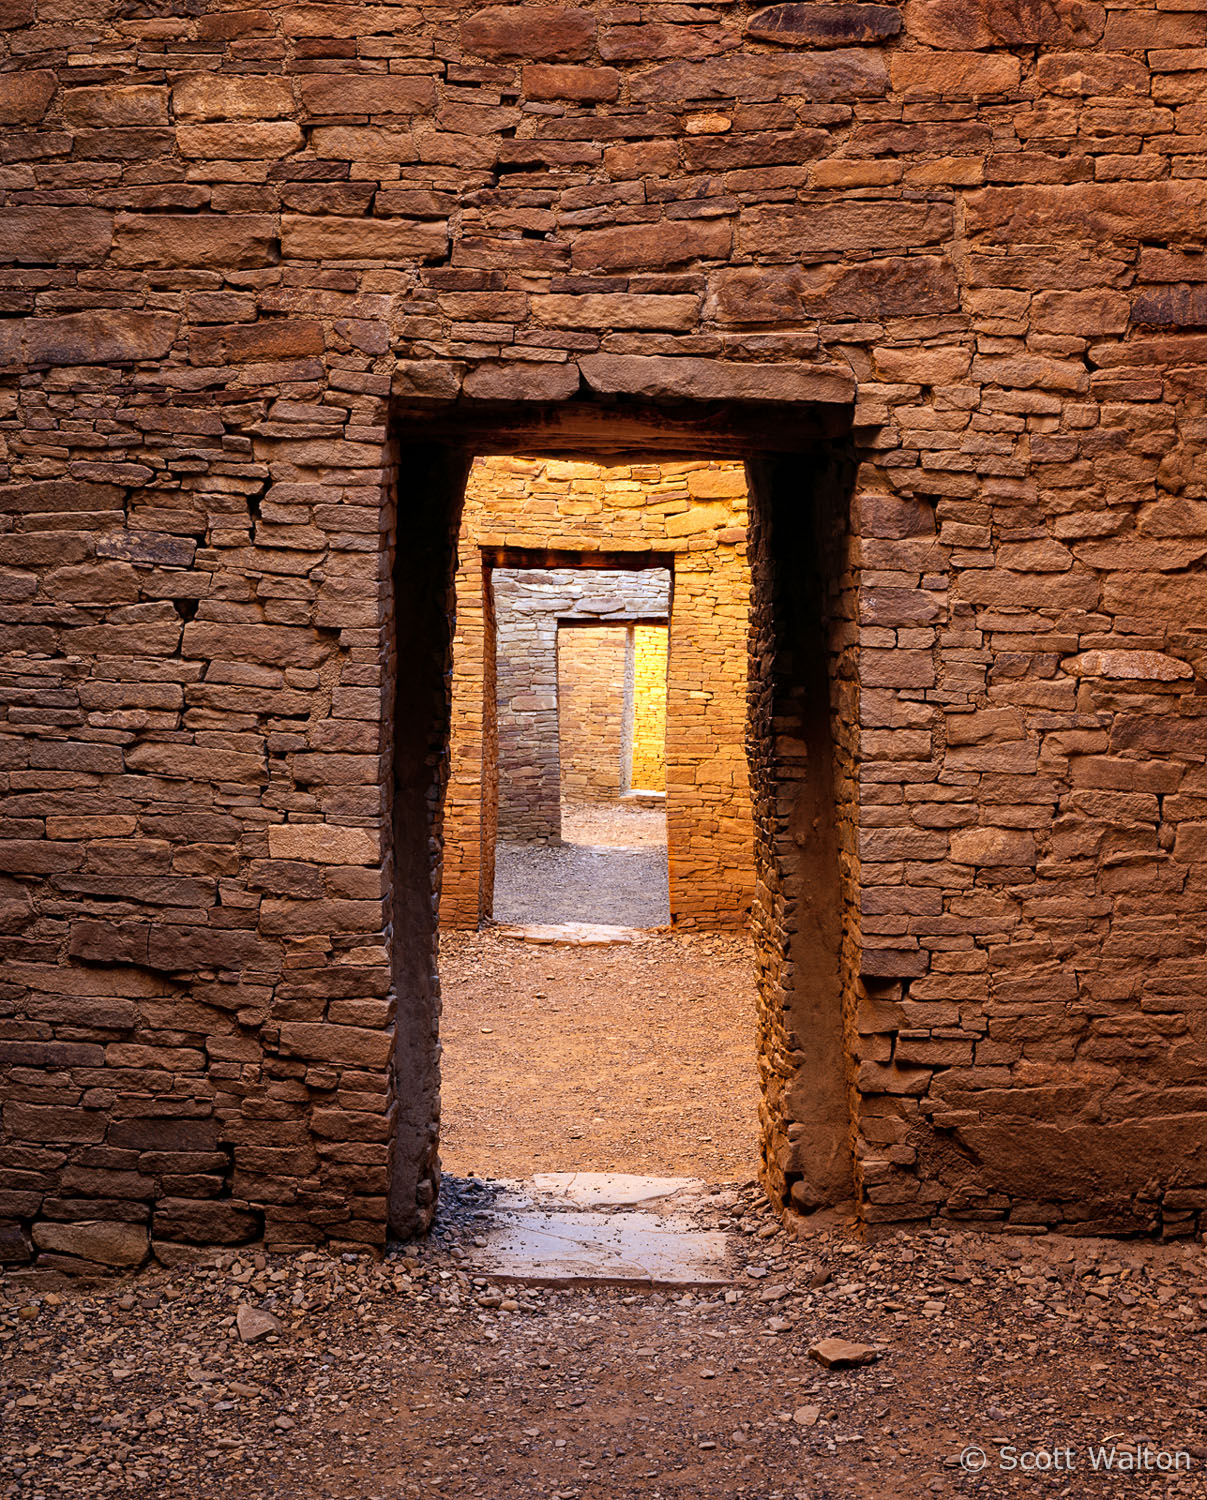 inviting-doors-chaco-culture-national-historical-park-new-mexico.jpg